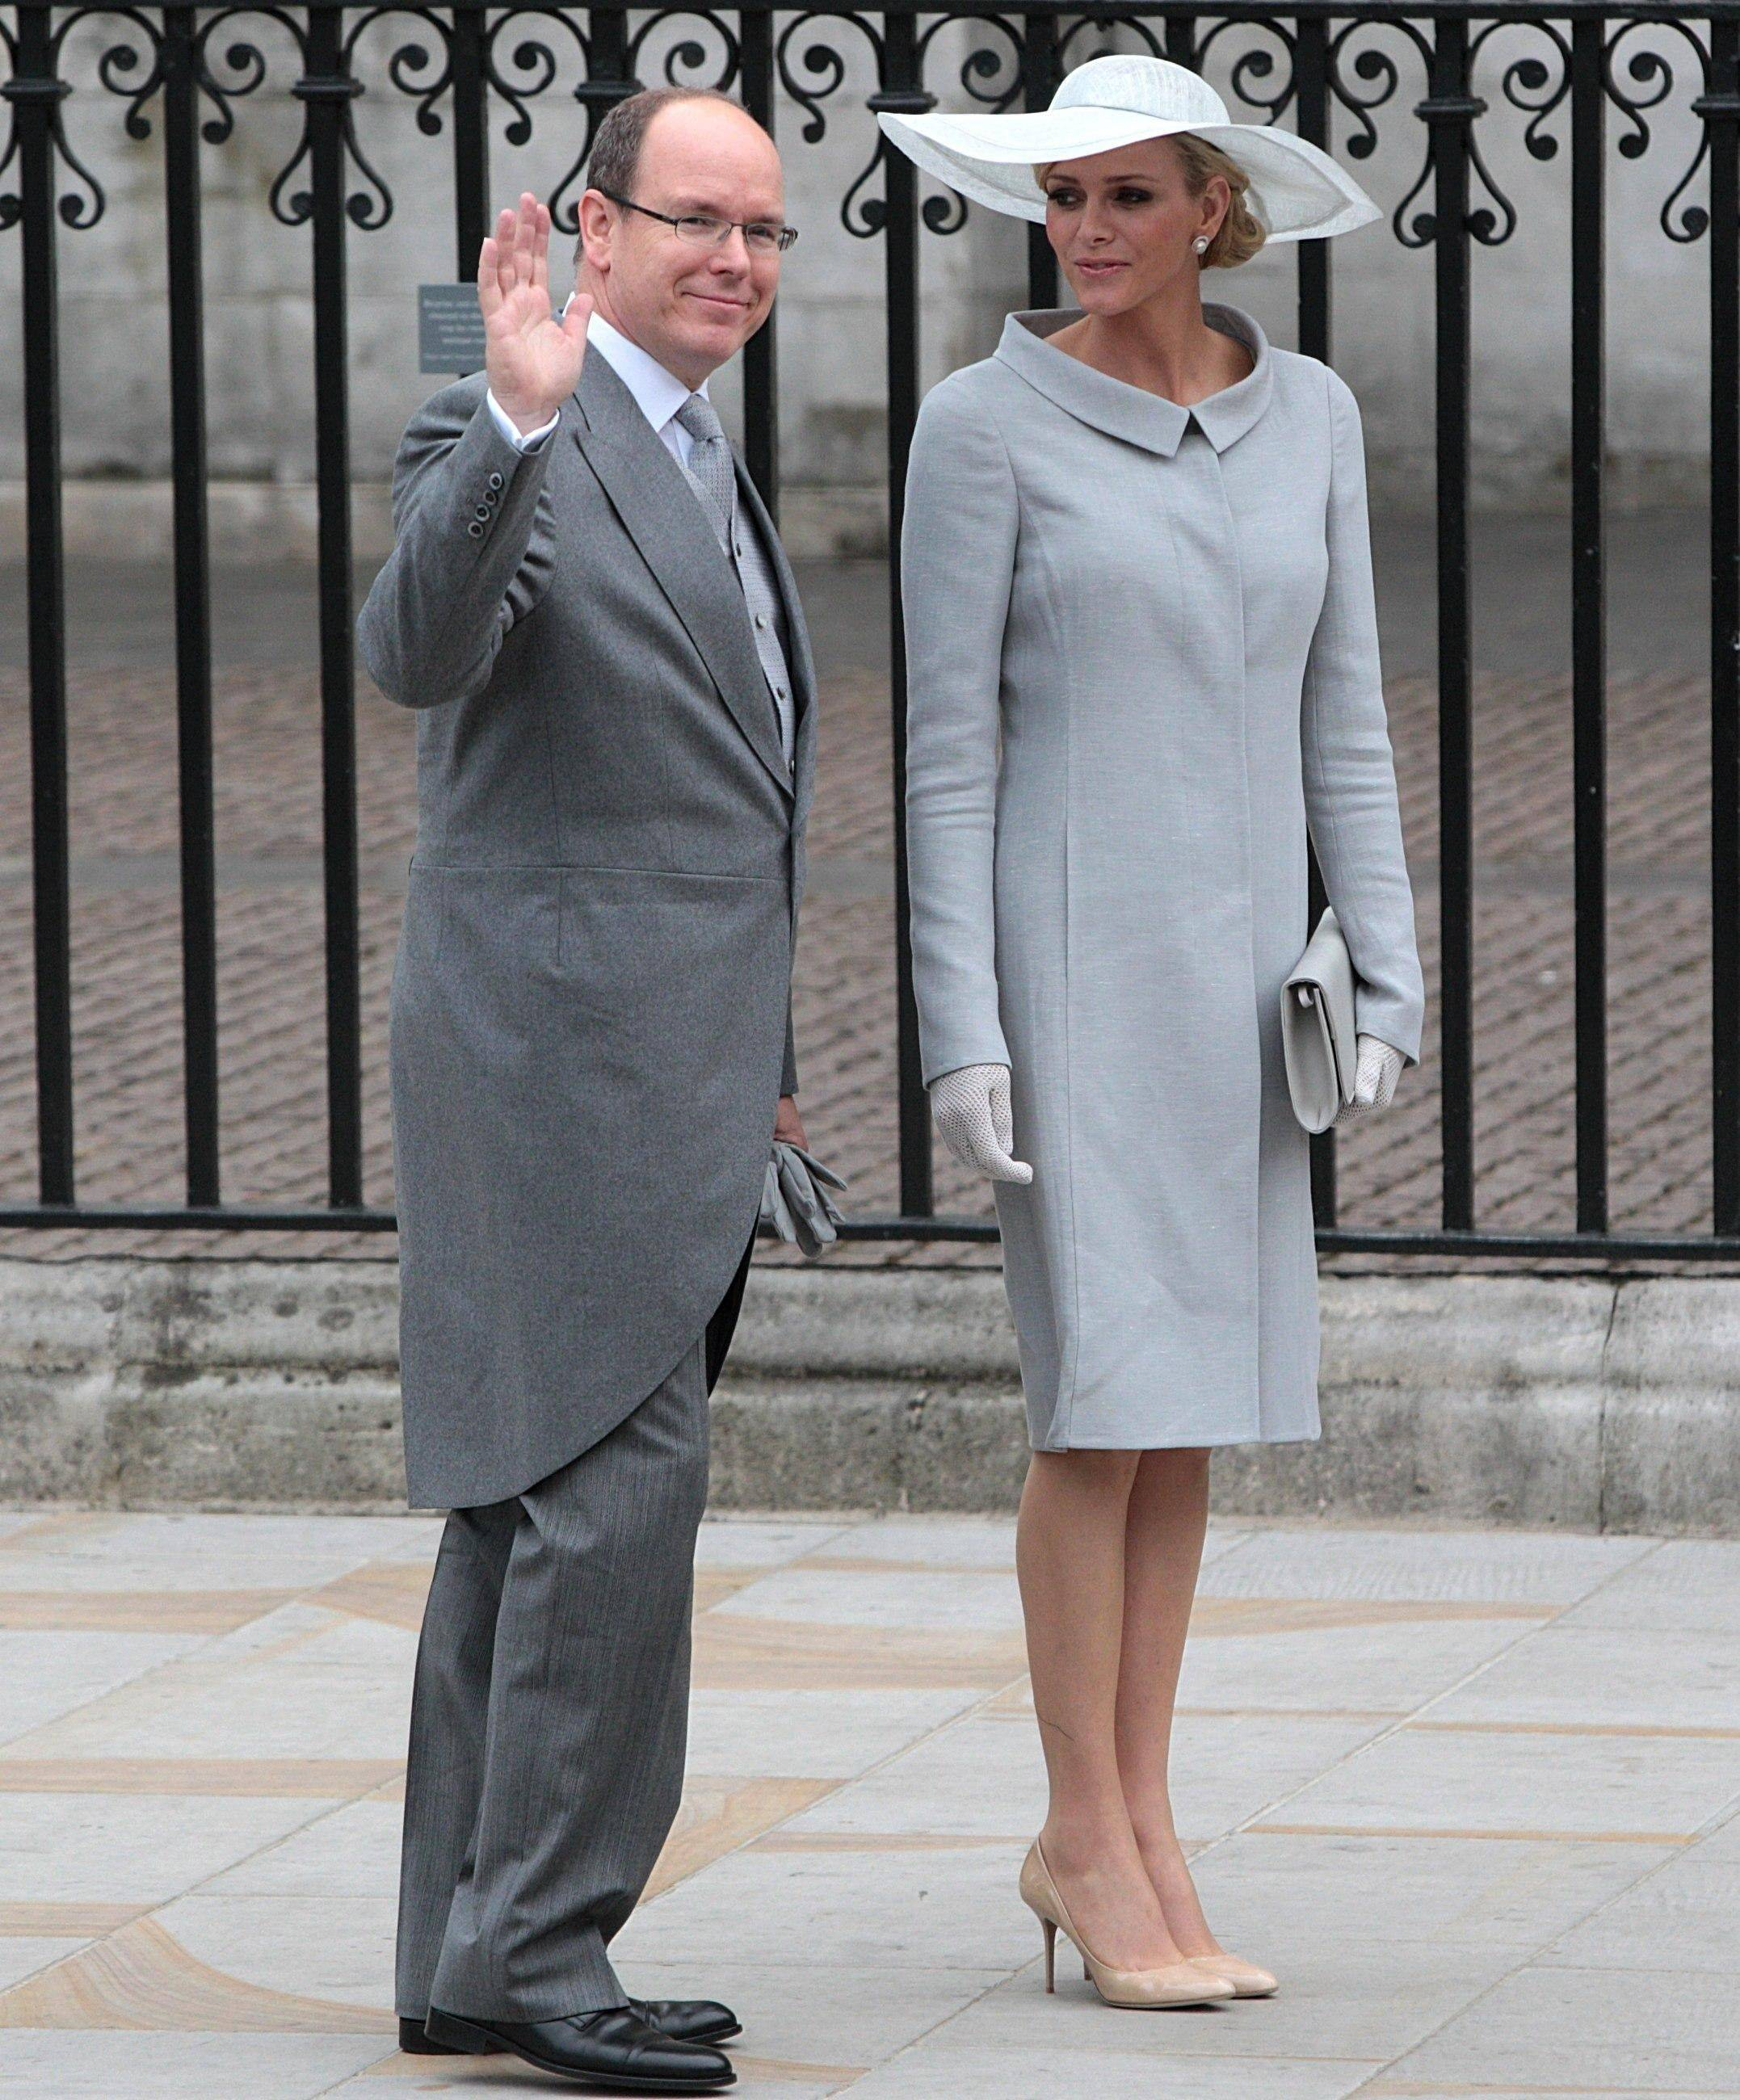 Prince Albert of Monaco with his fiancee Charlene Wittstock arrive at Westminster Abbey in London where Britain's Prince William and Kate Middleton will marry, Friday April 29, 2011.